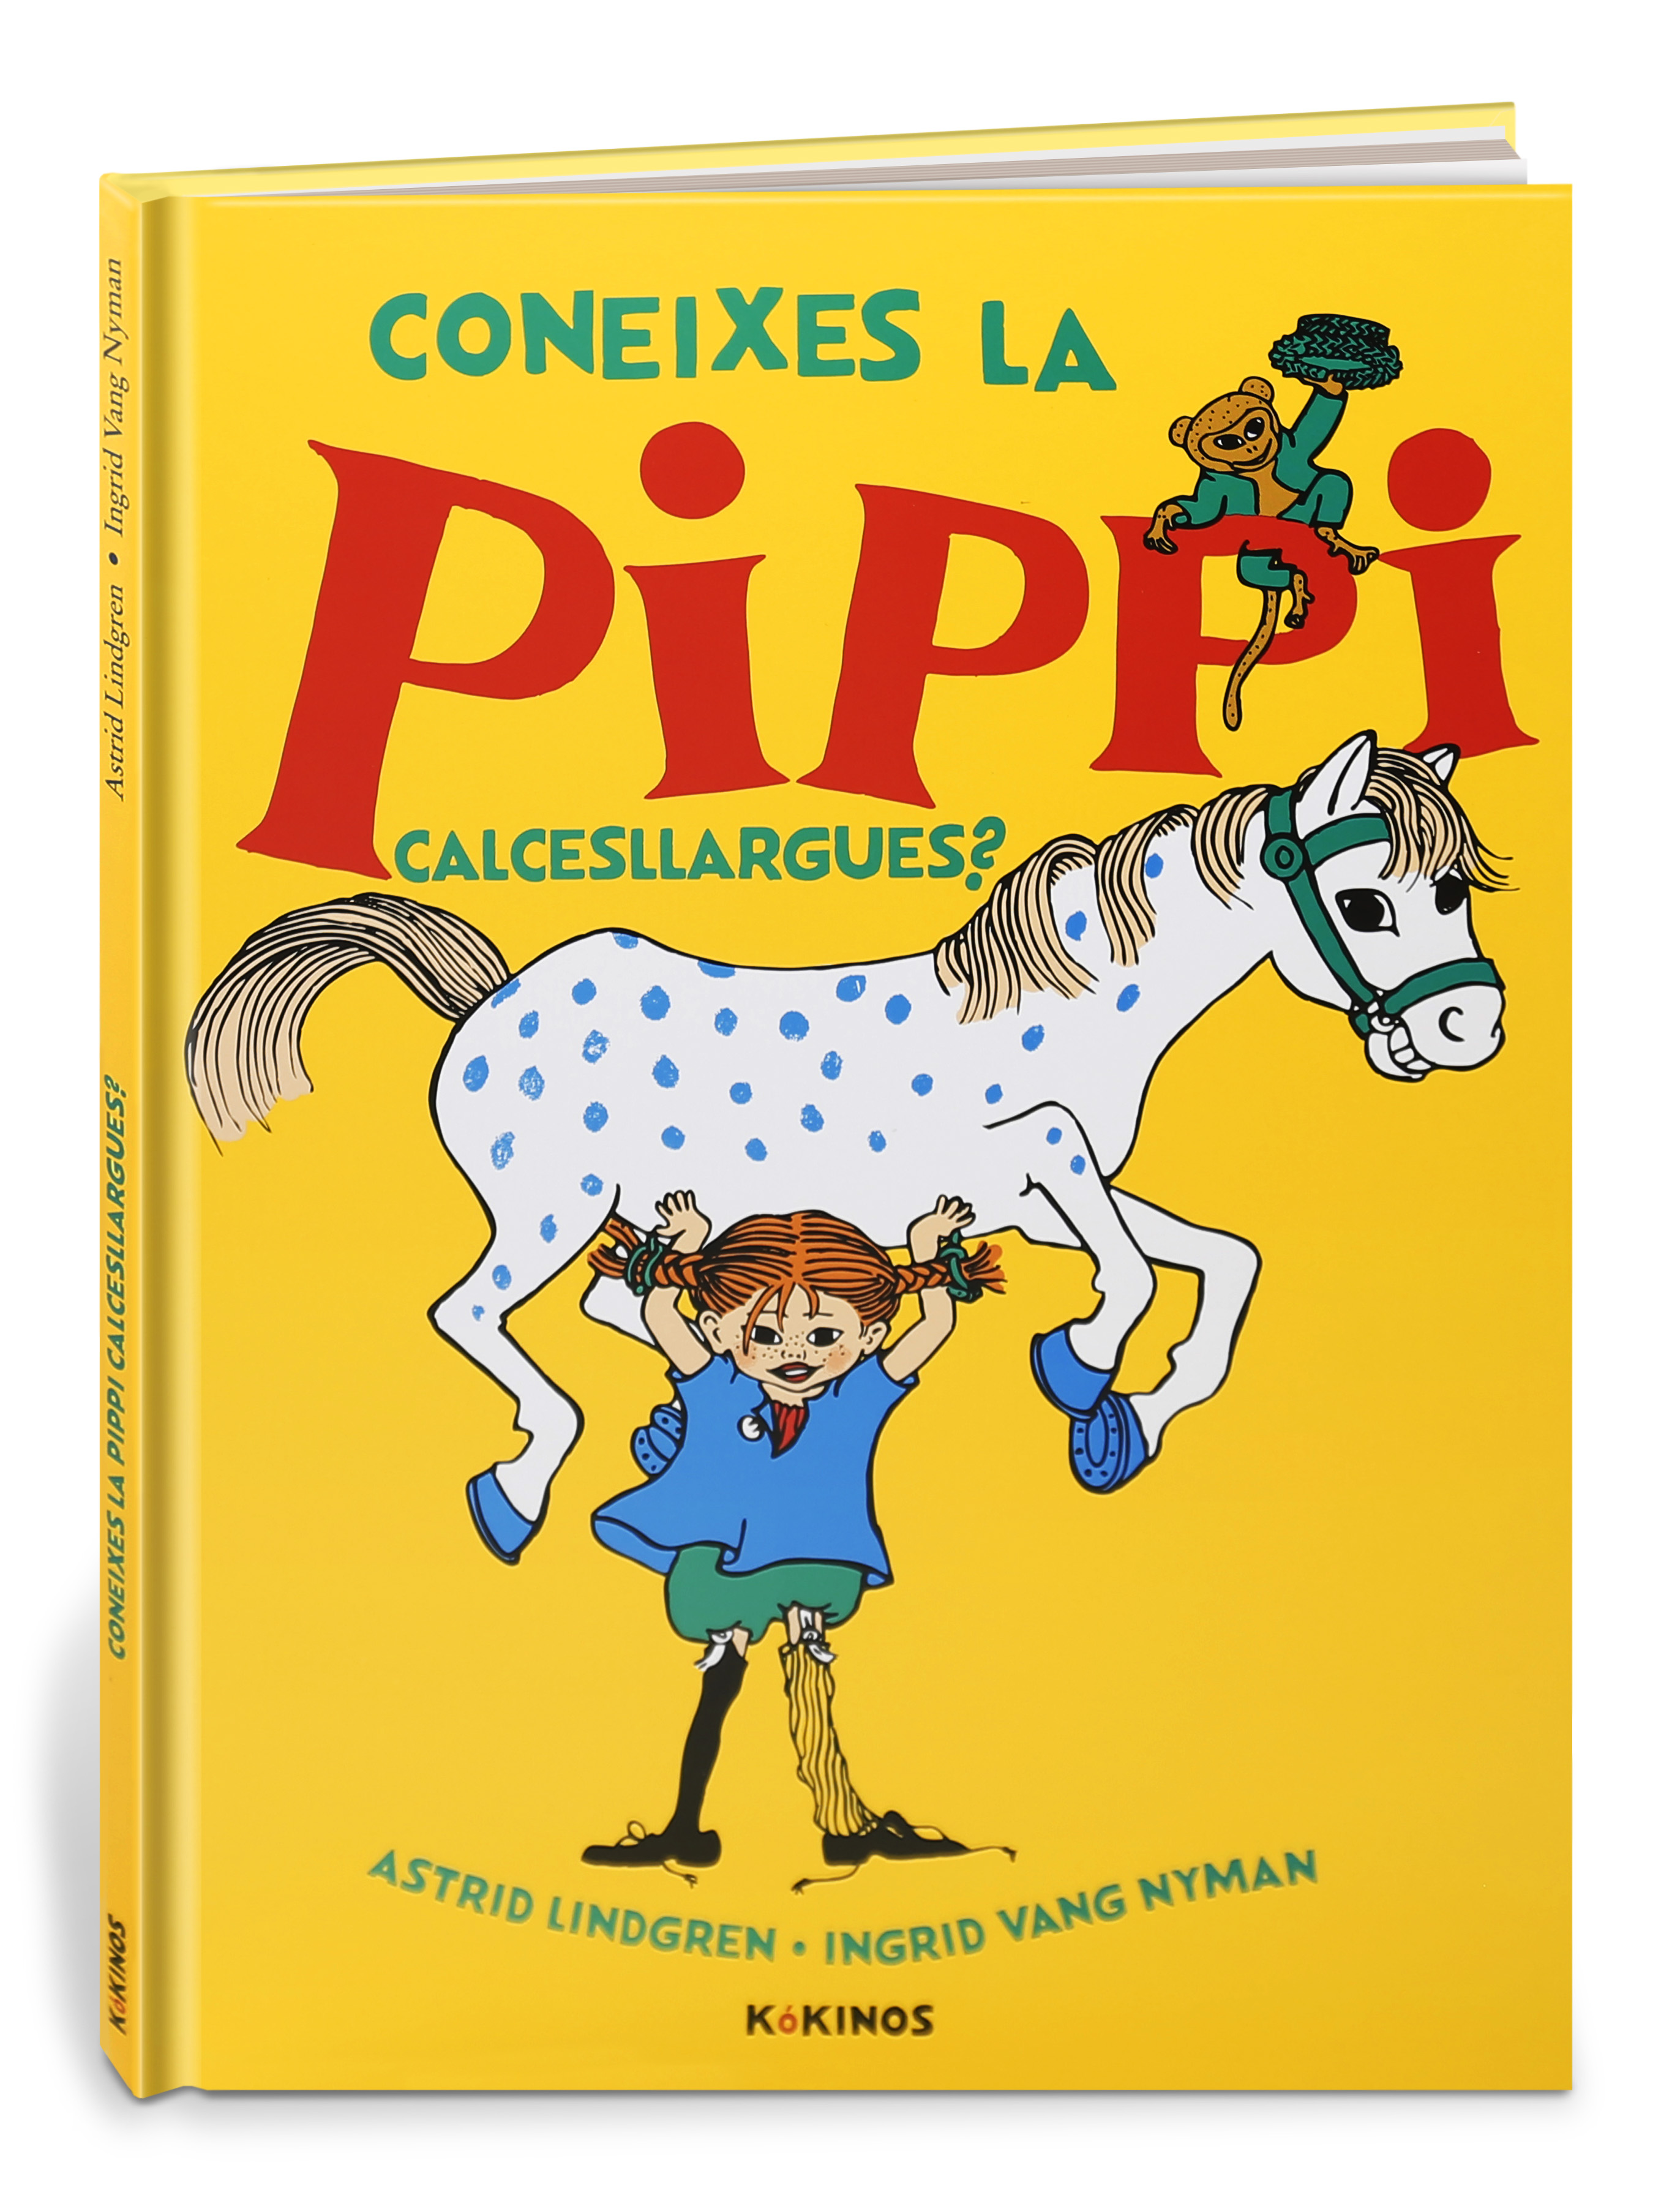 Coneixes la Pippi Calcesllargues? (9788417742300)